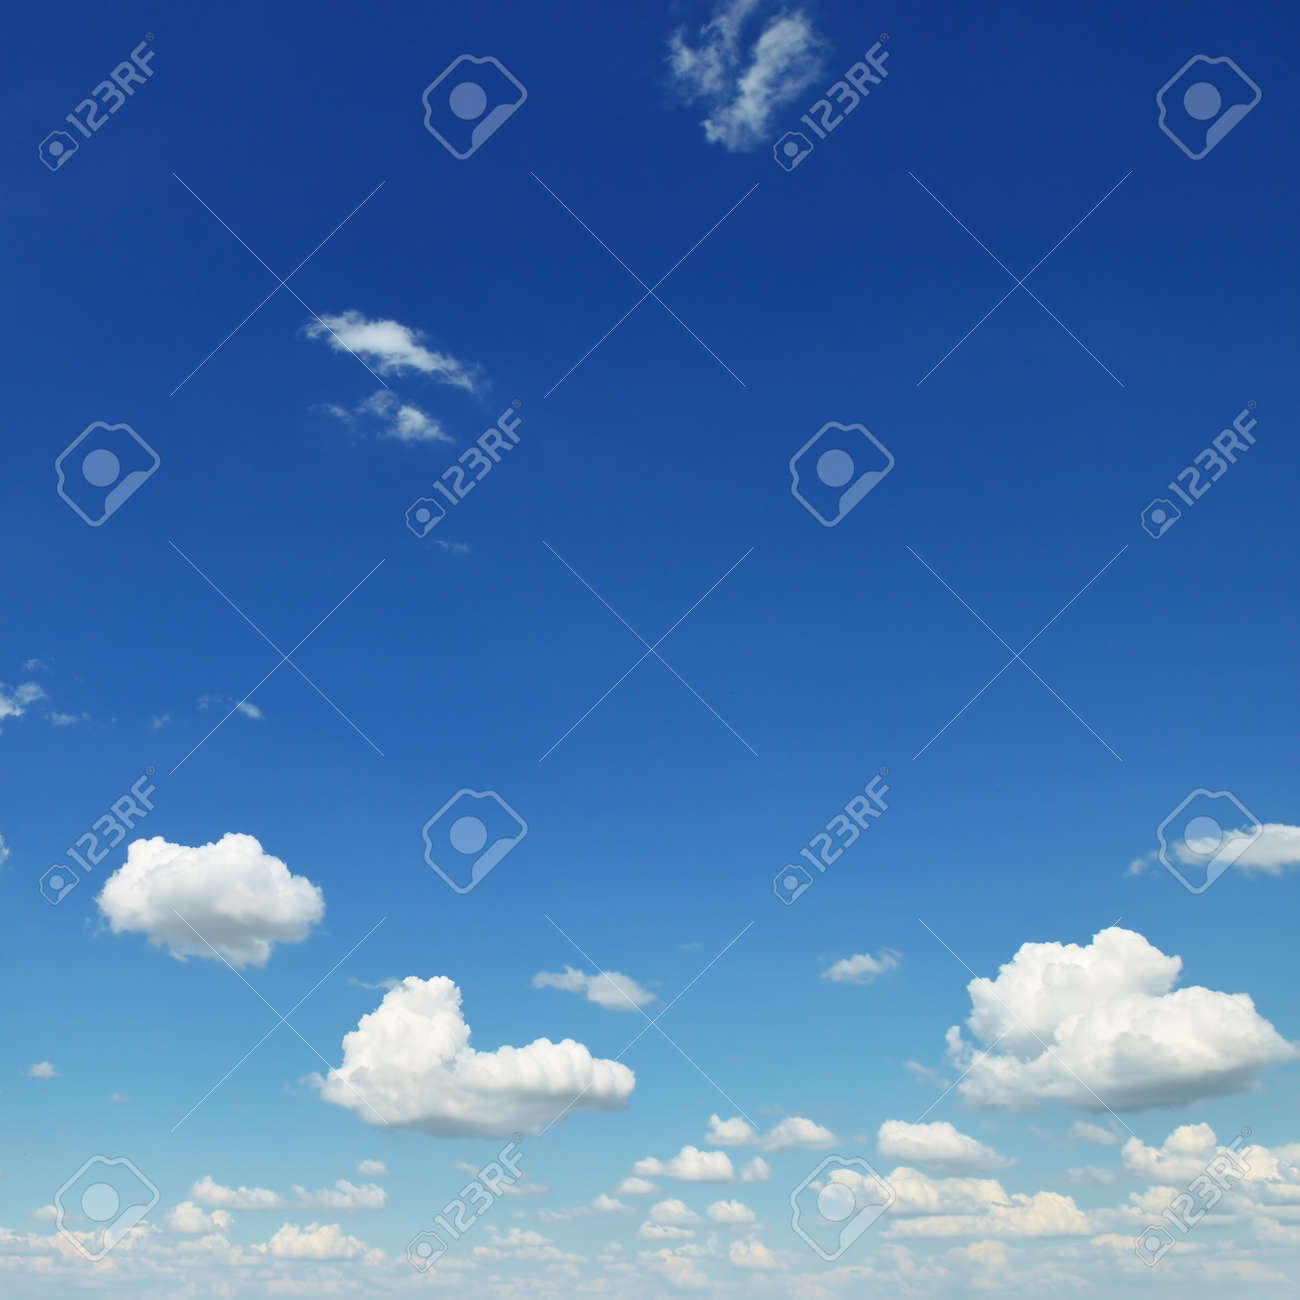 small white clouds on sky background - 34429754